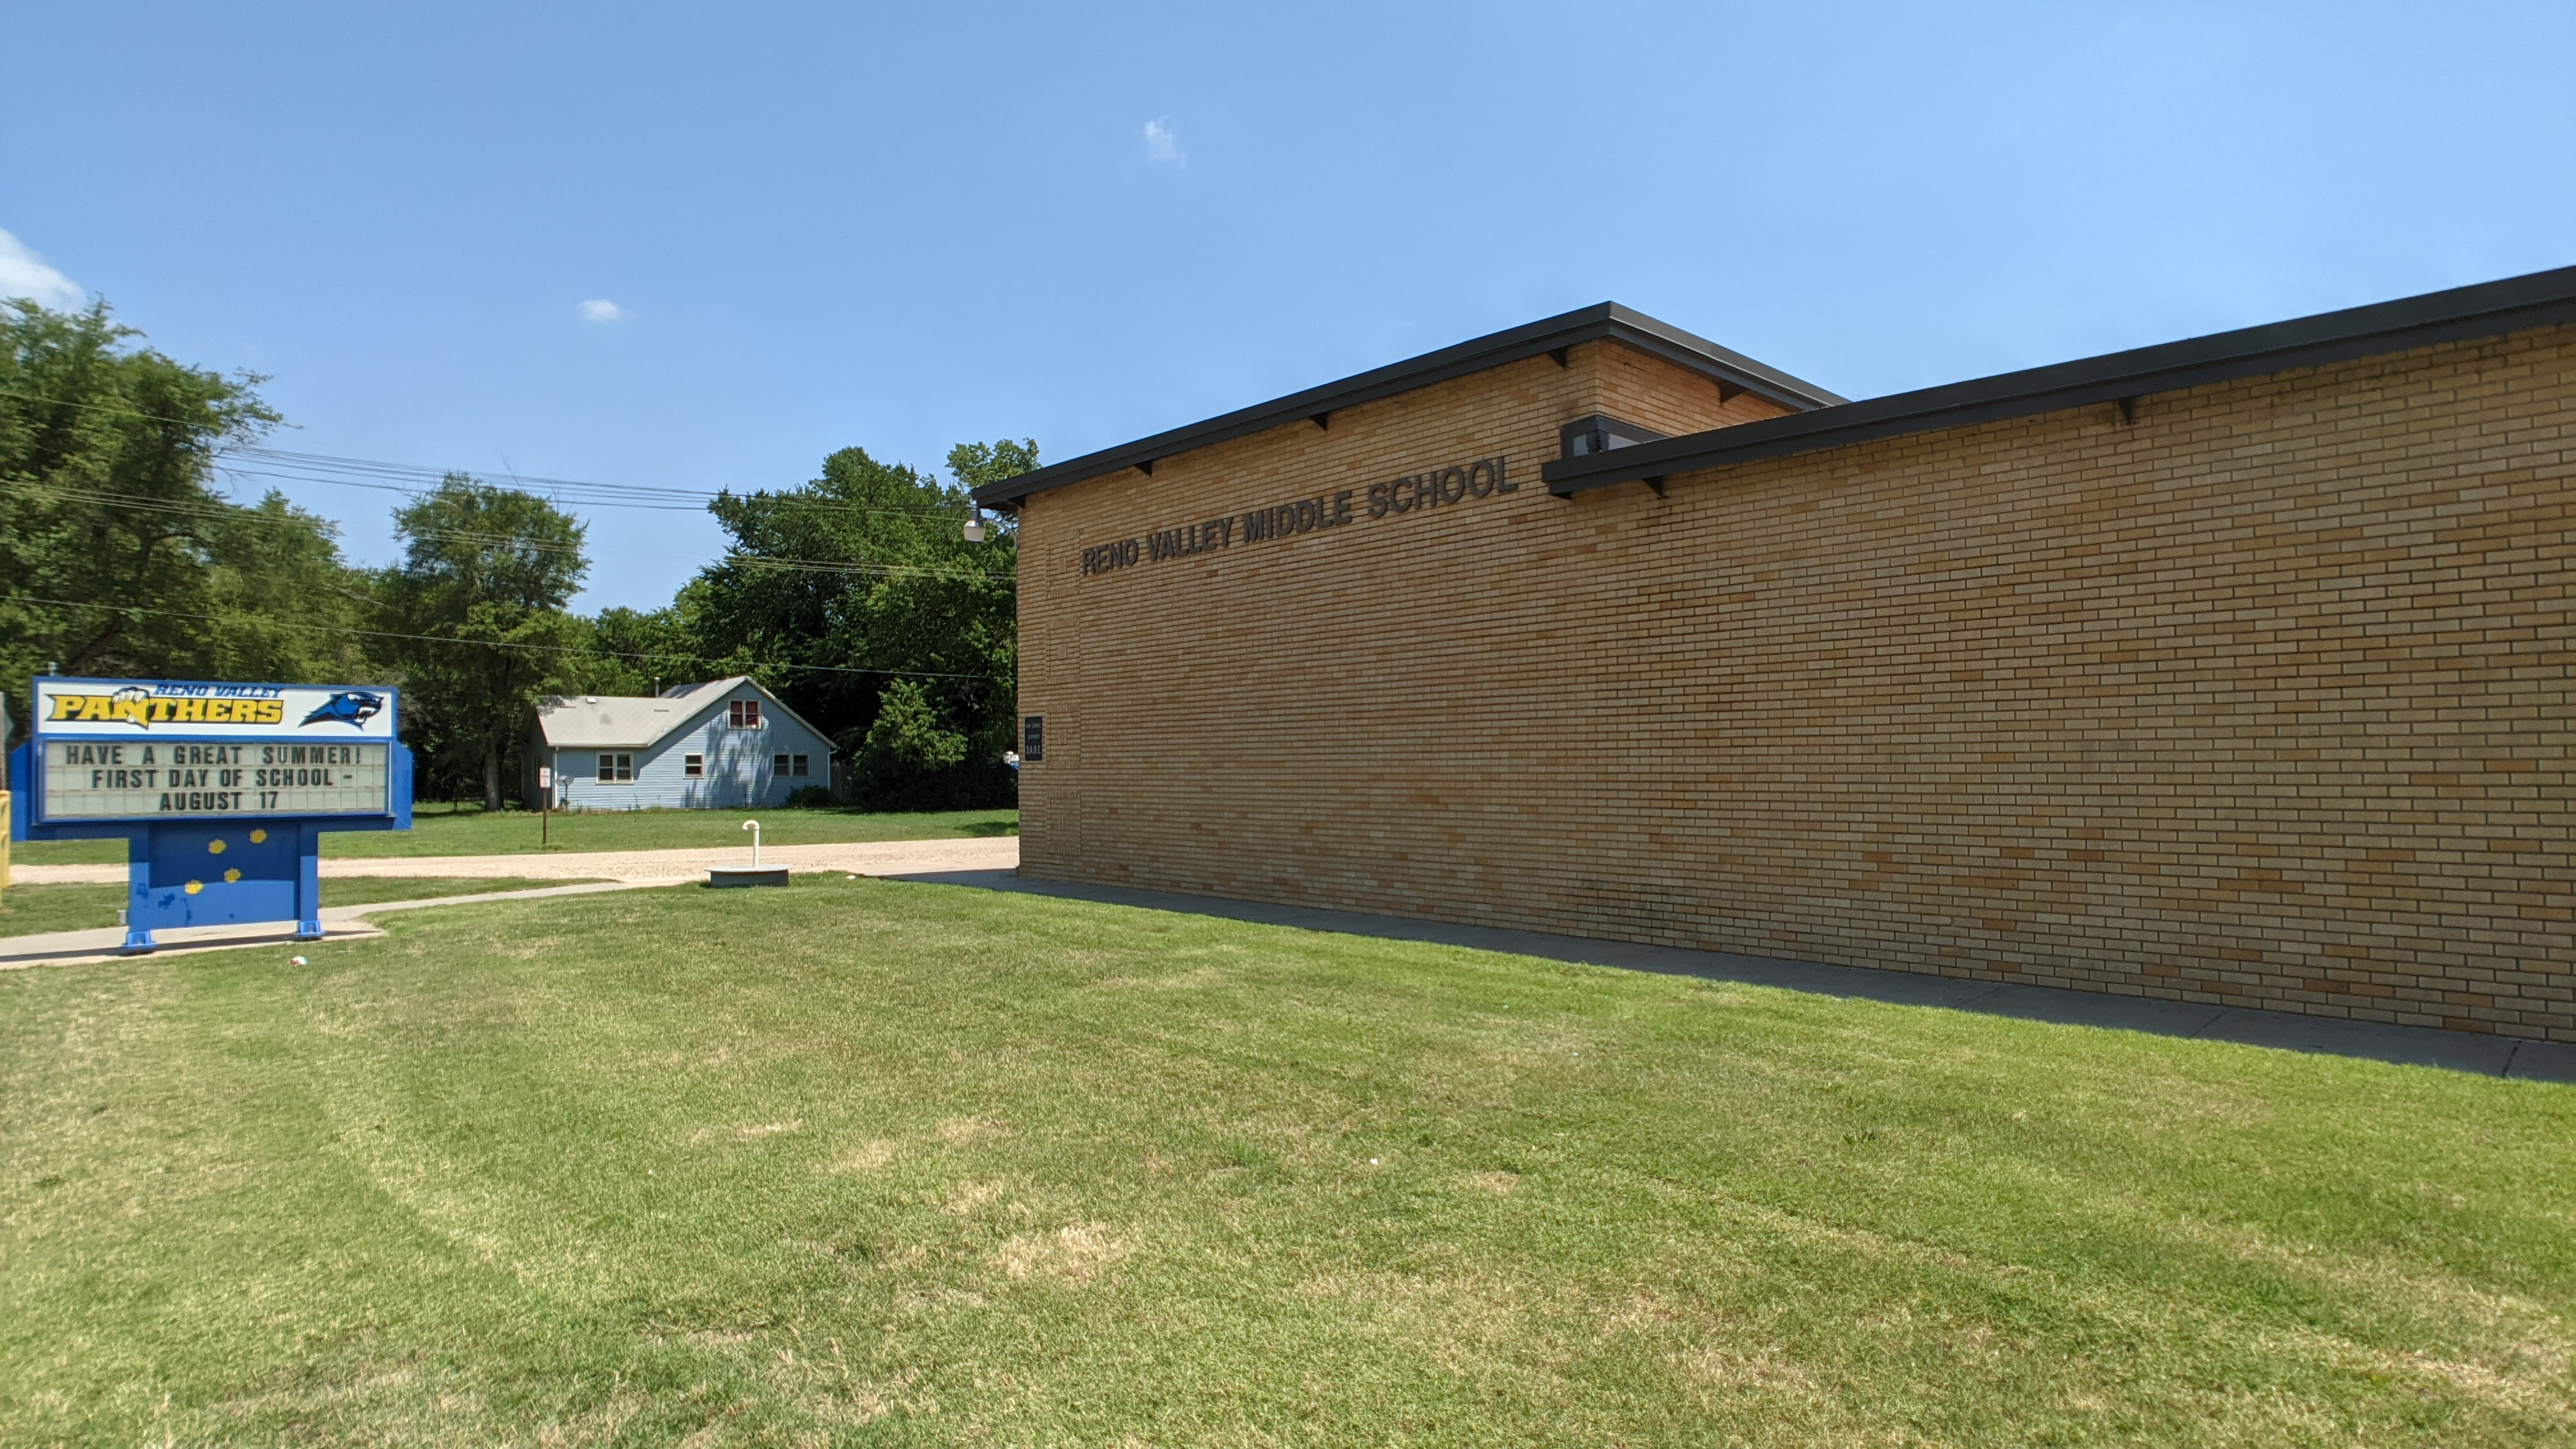 RVMS-West Building Sign